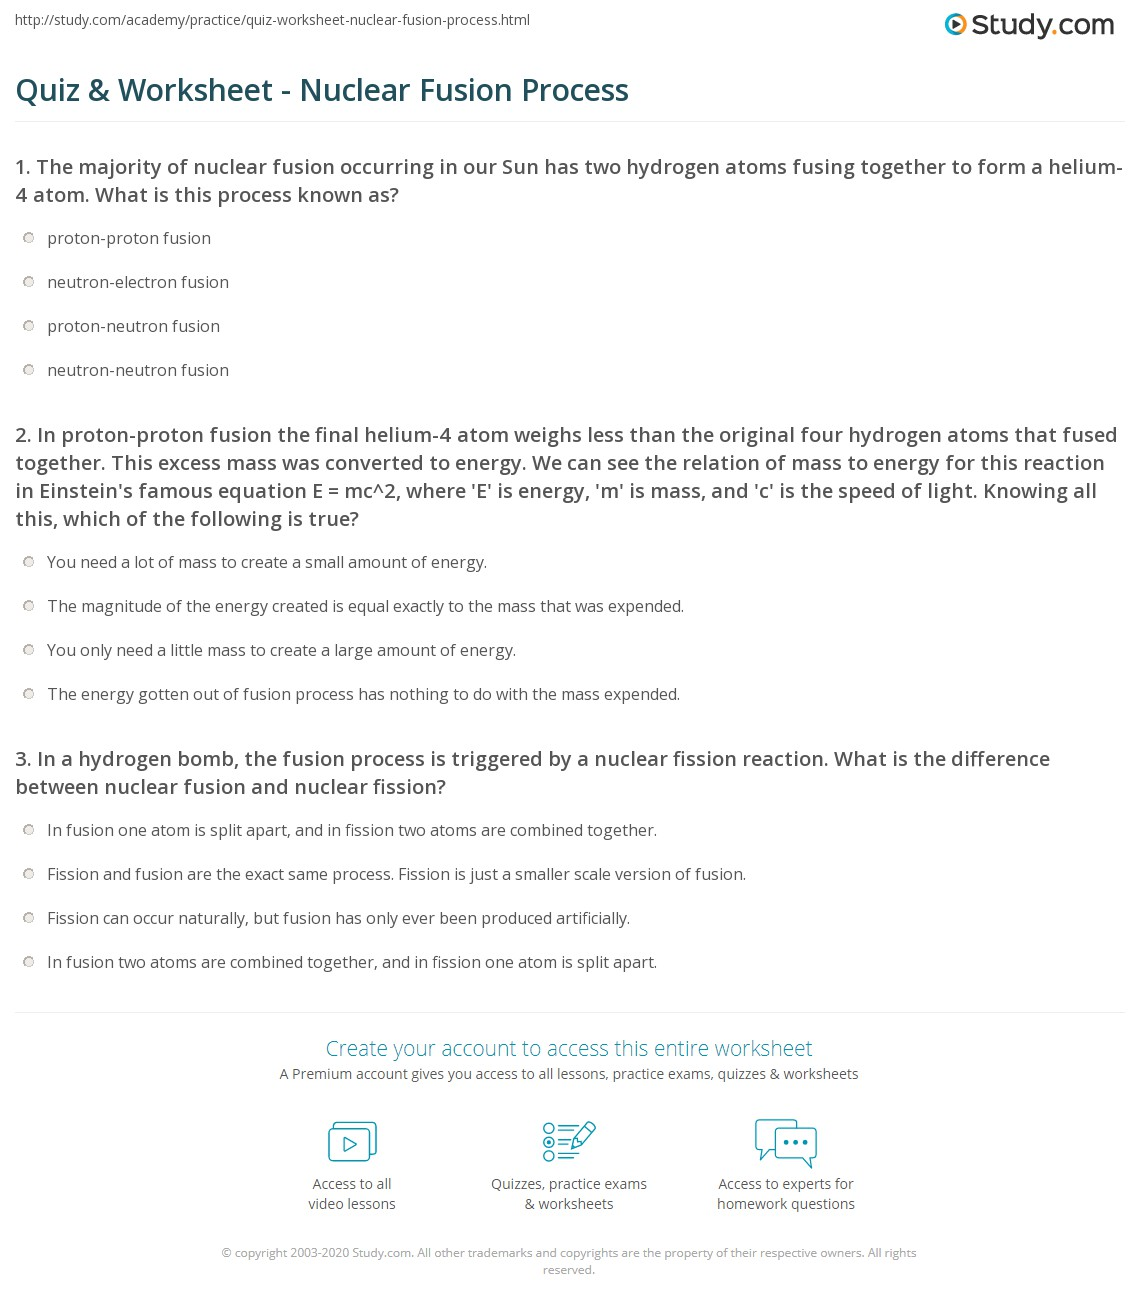 Quiz & Worksheet - Nuclear Fusion Process | Study.com